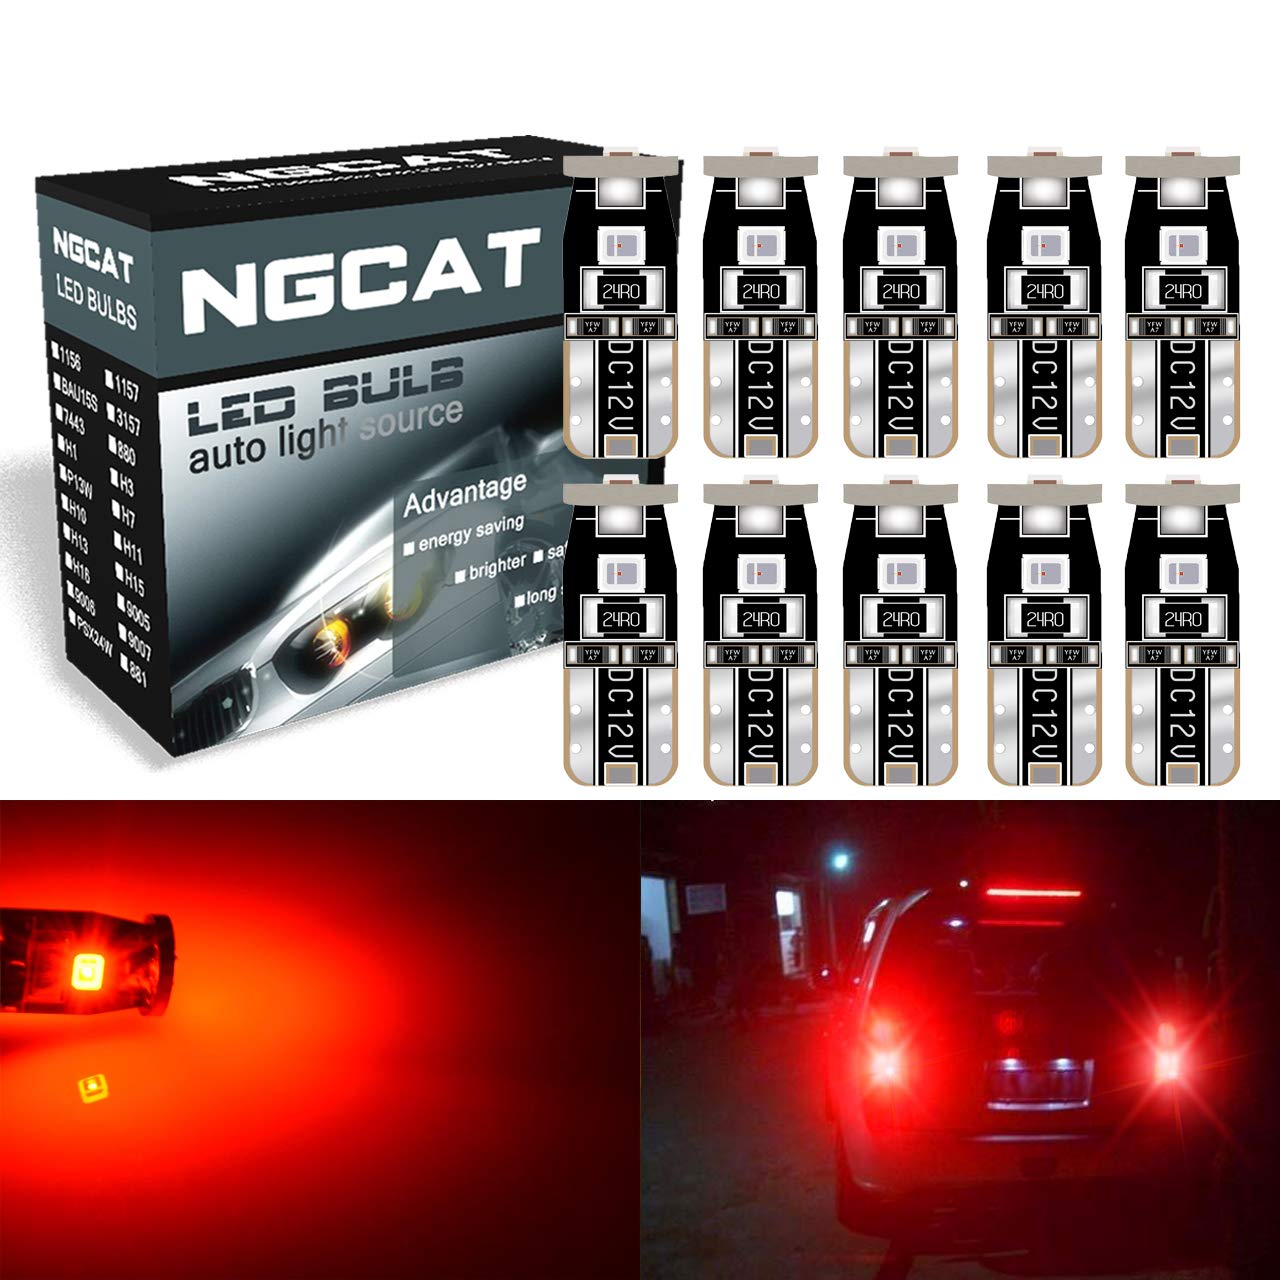 NGCAT 10pcs Extremely Brigh 450 Lumens 3030 Chipset T10 for Car Interior Dome Map Door Courtesy License Plate Lights Compact Wedge T10 168 194 2825 Red 6000K 12V